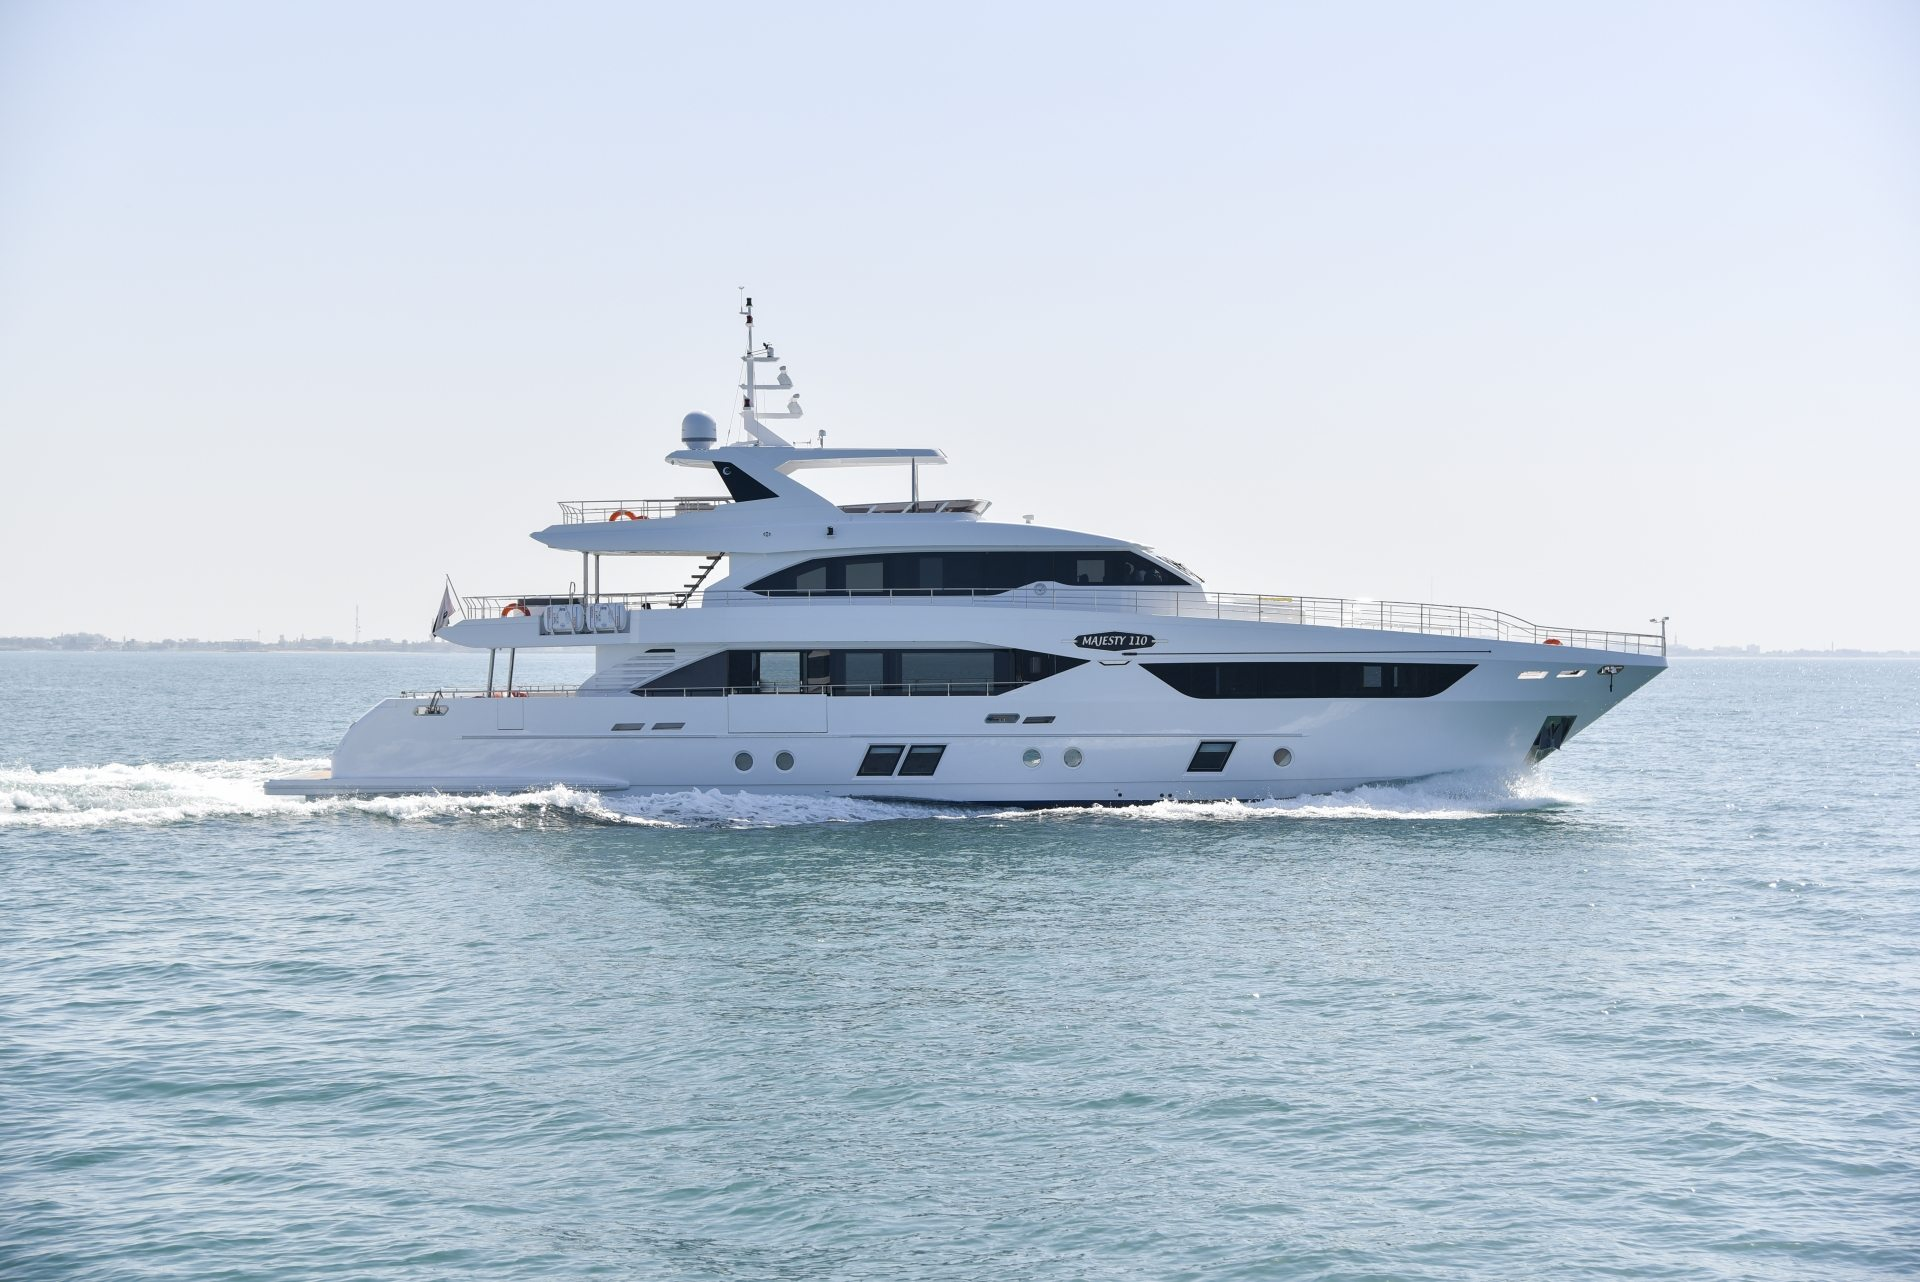 Majesty 110 - Majesty Superyachts by - Drettmann Yachts